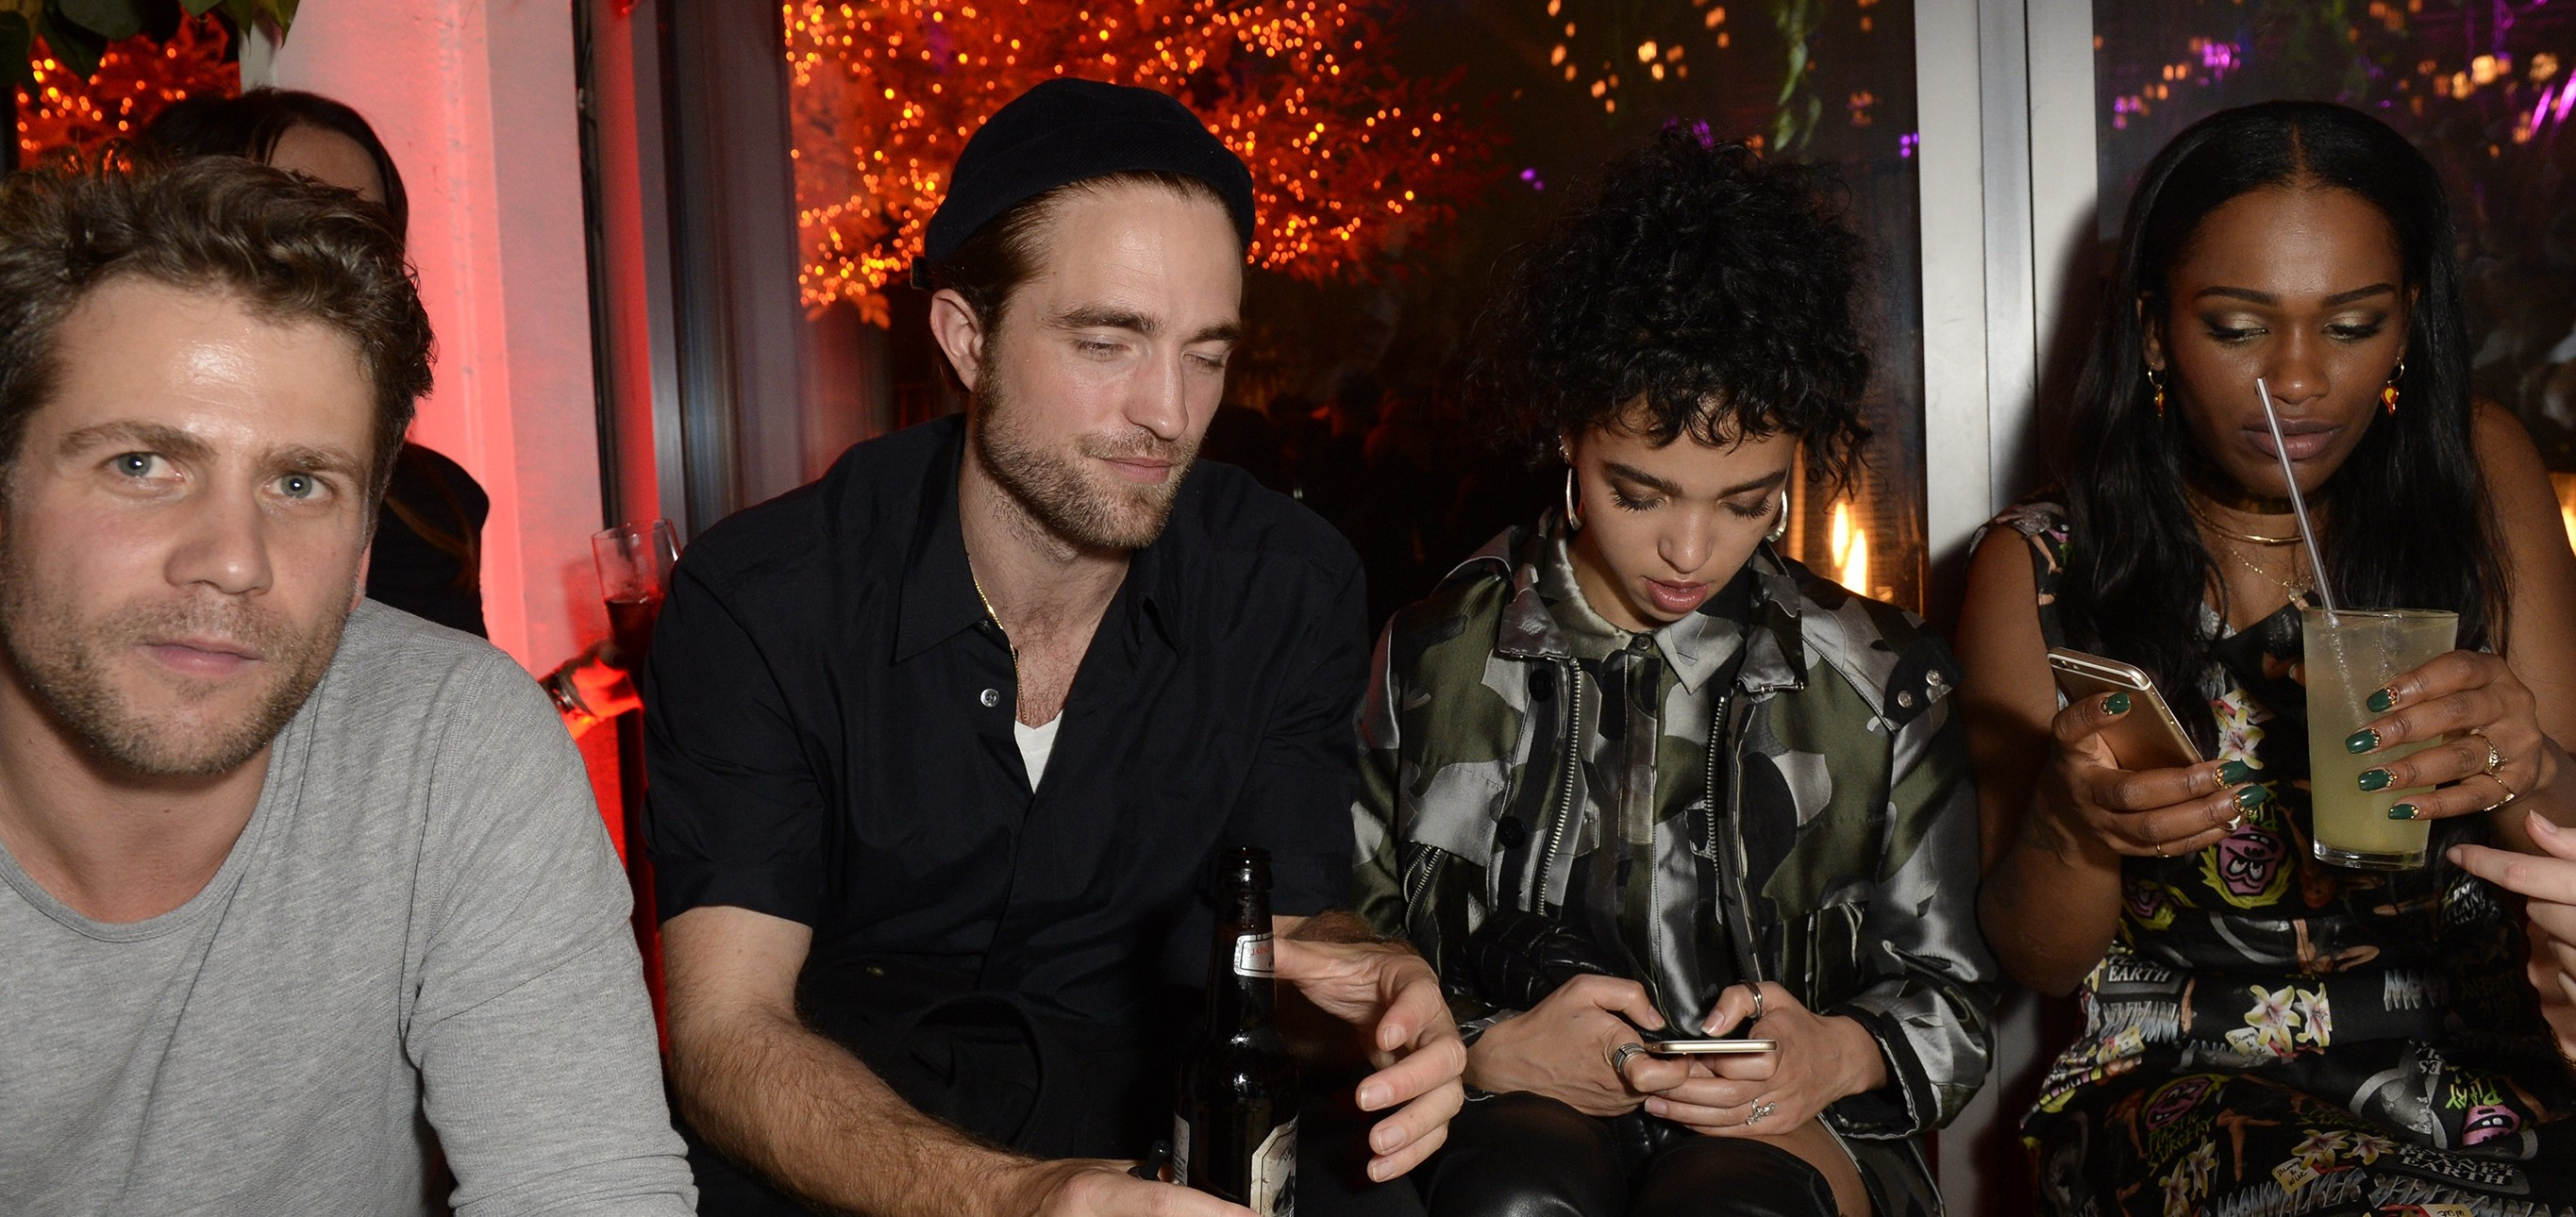 FOTOS: Robert e FKA Twigs no Sushisamba (10/11)